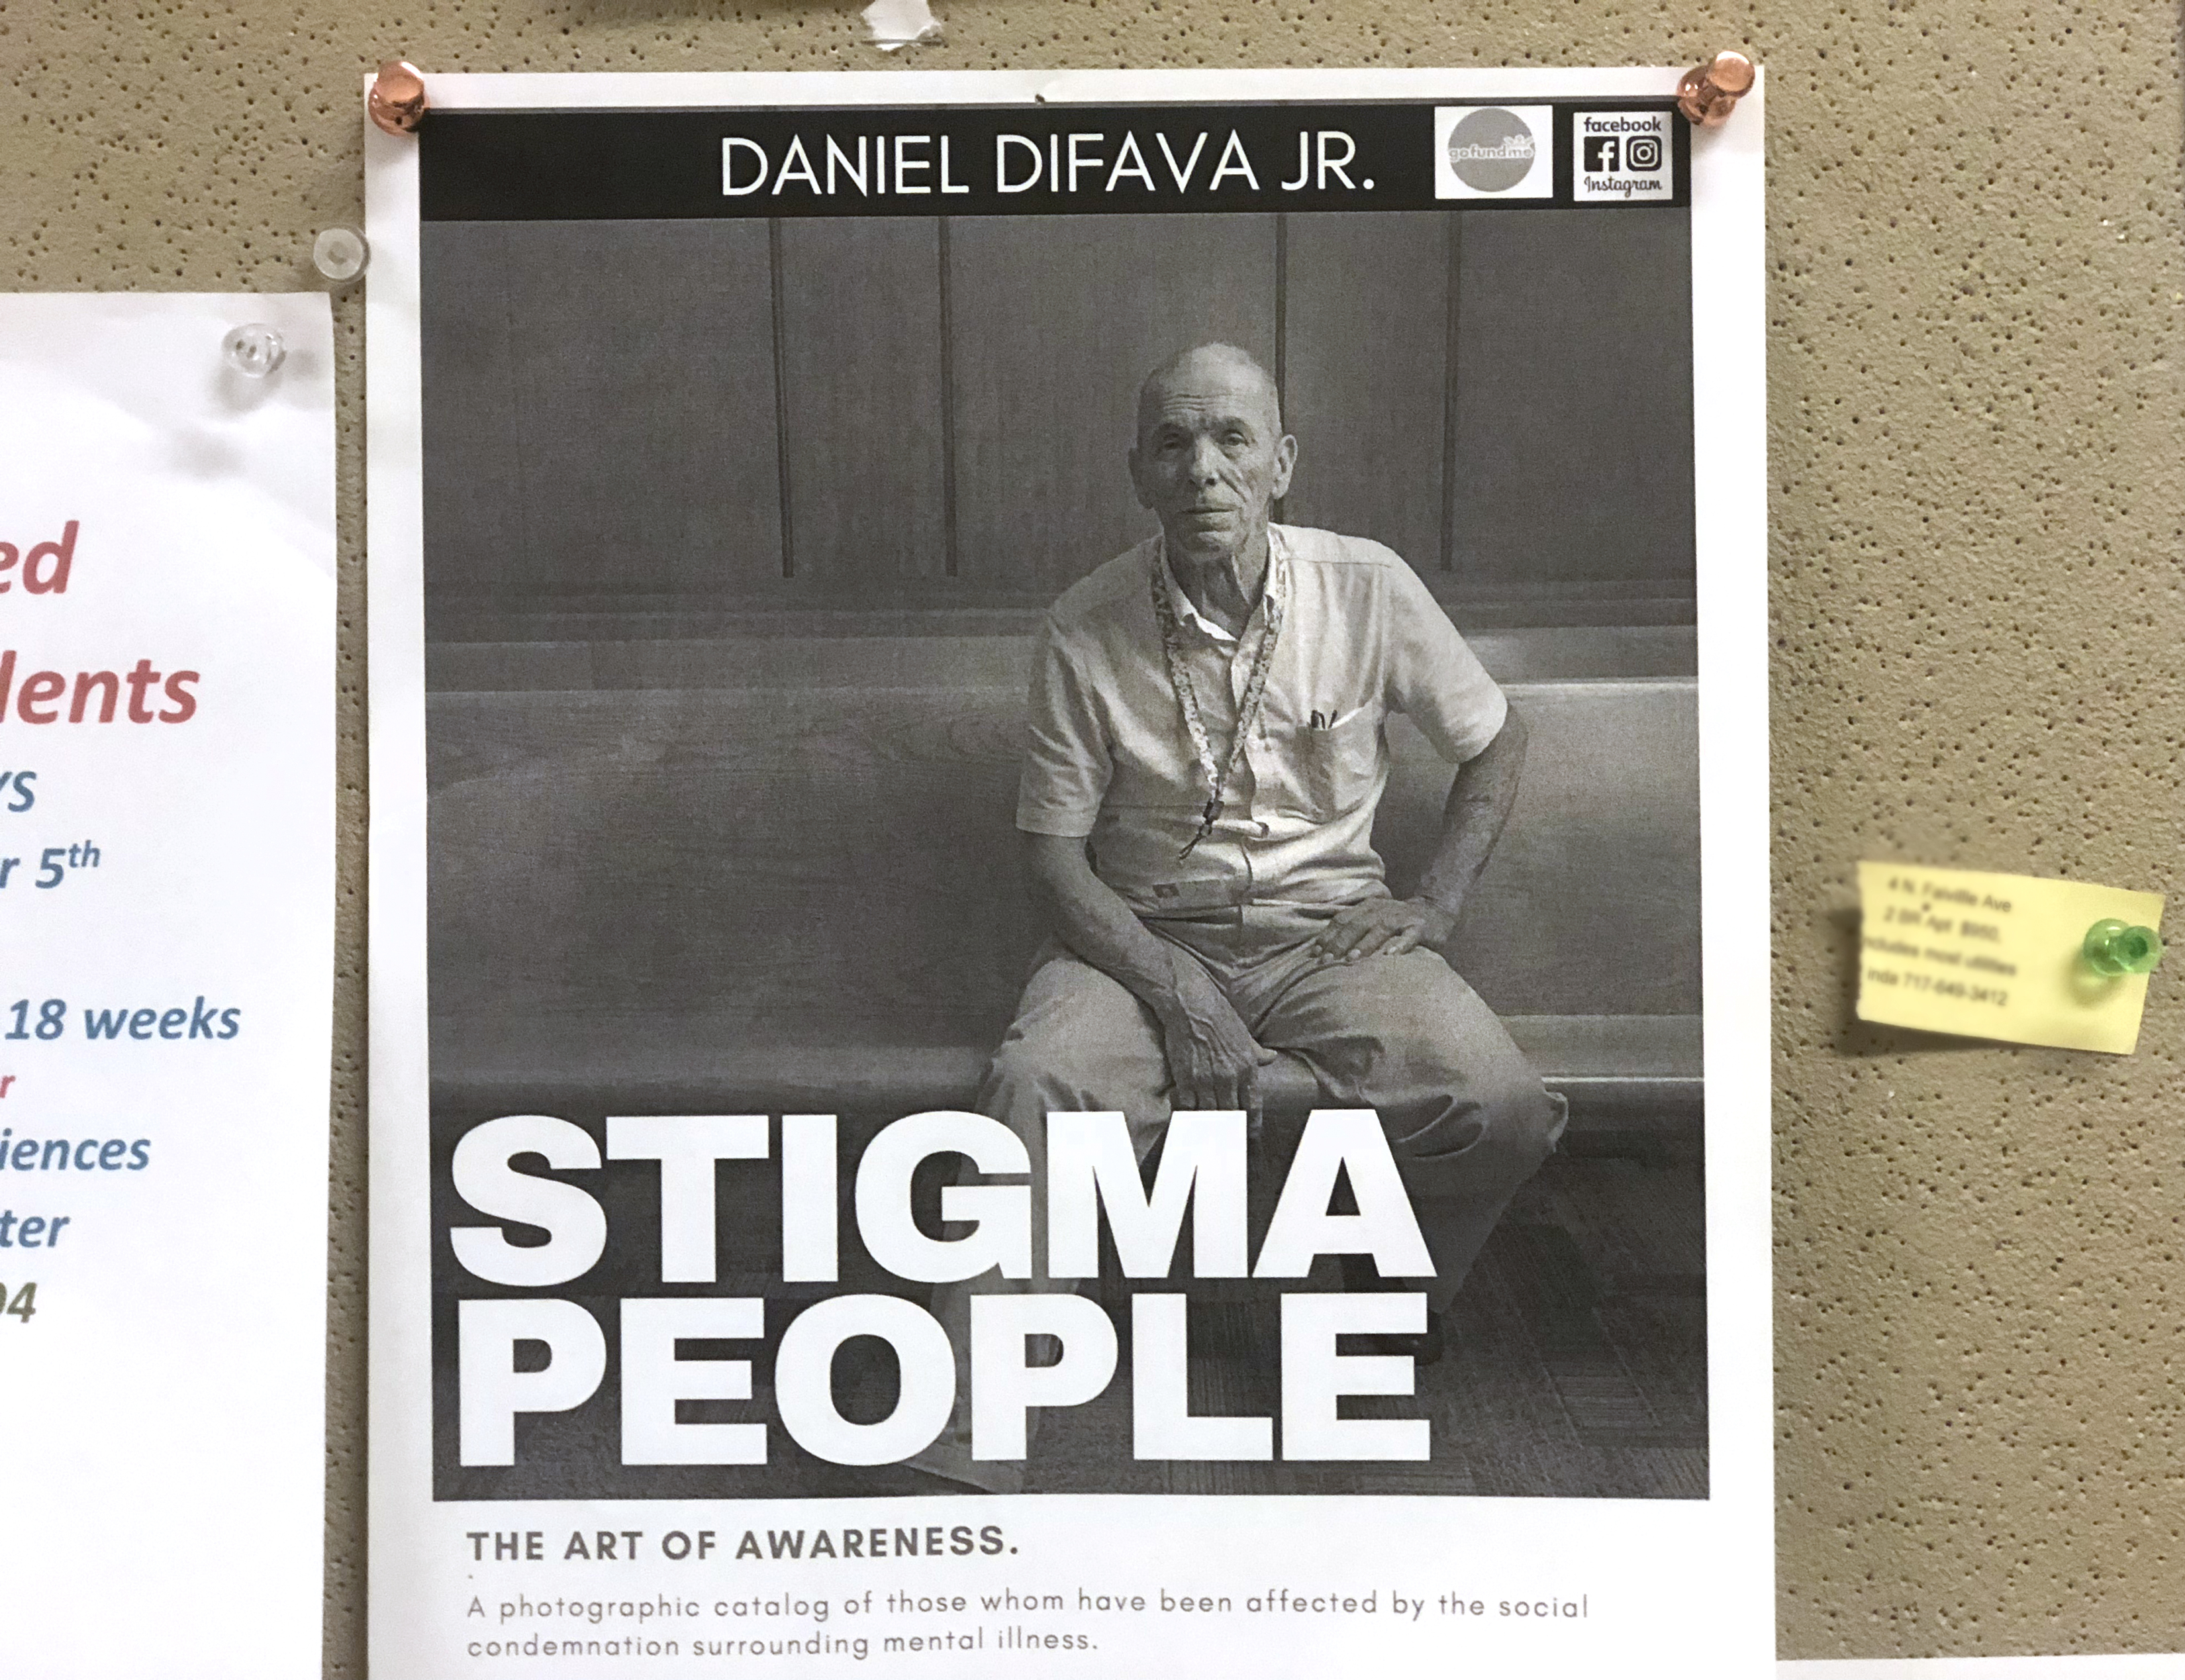 """Poster of """"Stigma People"""" photo exhibit tacked on a bulletin board. Photo is of ol der man sitting on a bench looking seriously at camera. Poster says: """"Daniel DiFava Jr., Stigma People: The Art of Awareness: A photographic catalog of those whom have been affected by the social condemnation surrounding mental illness."""""""